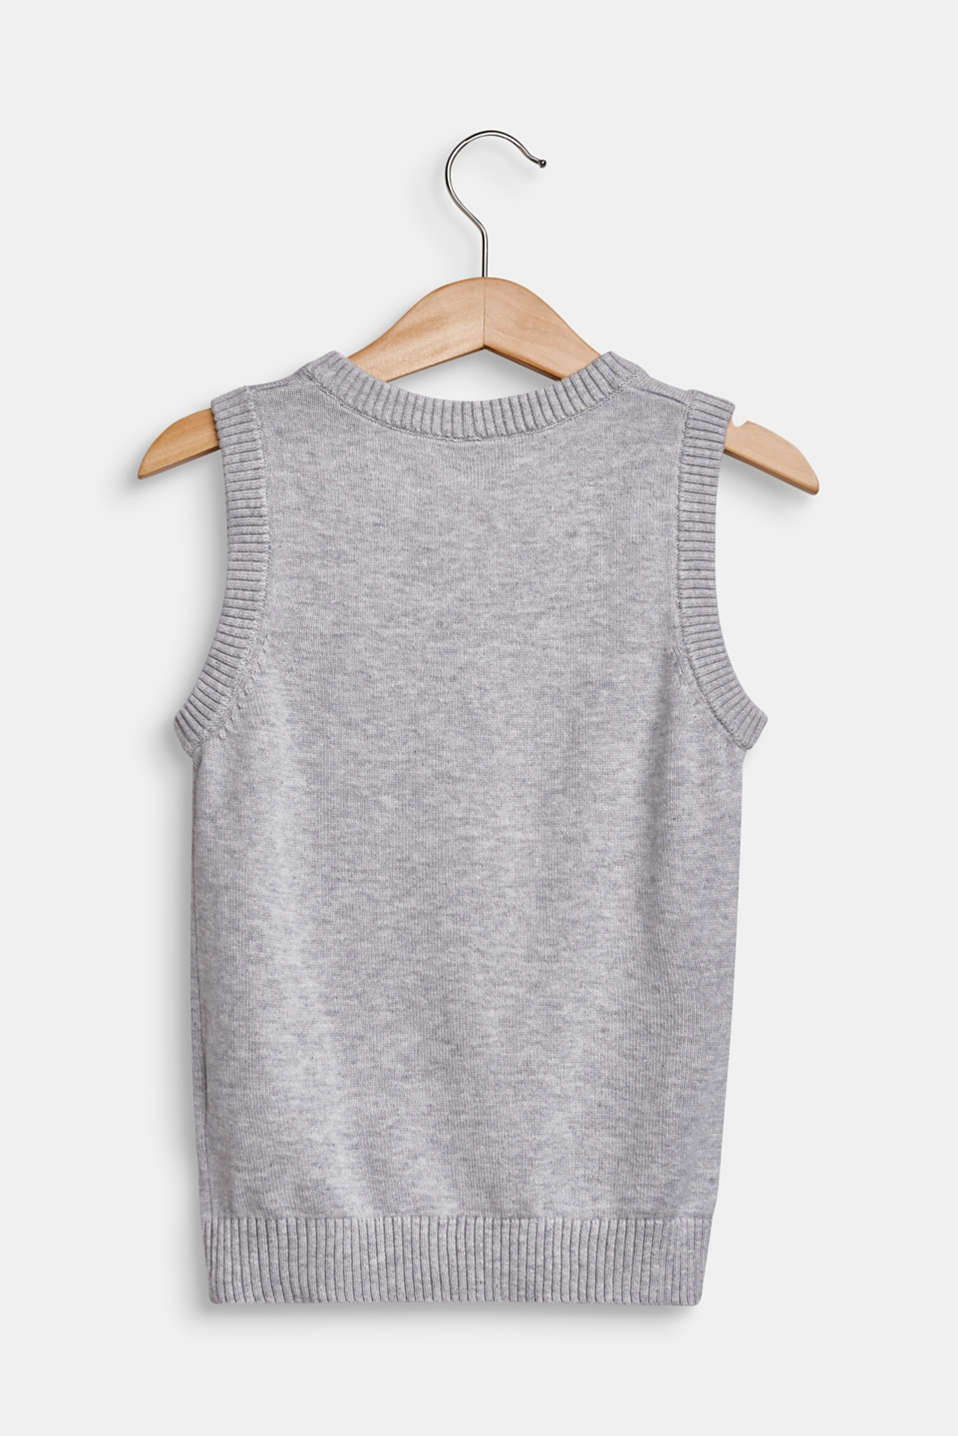 100% cotton tank top, HEATHER SILVER, detail image number 1